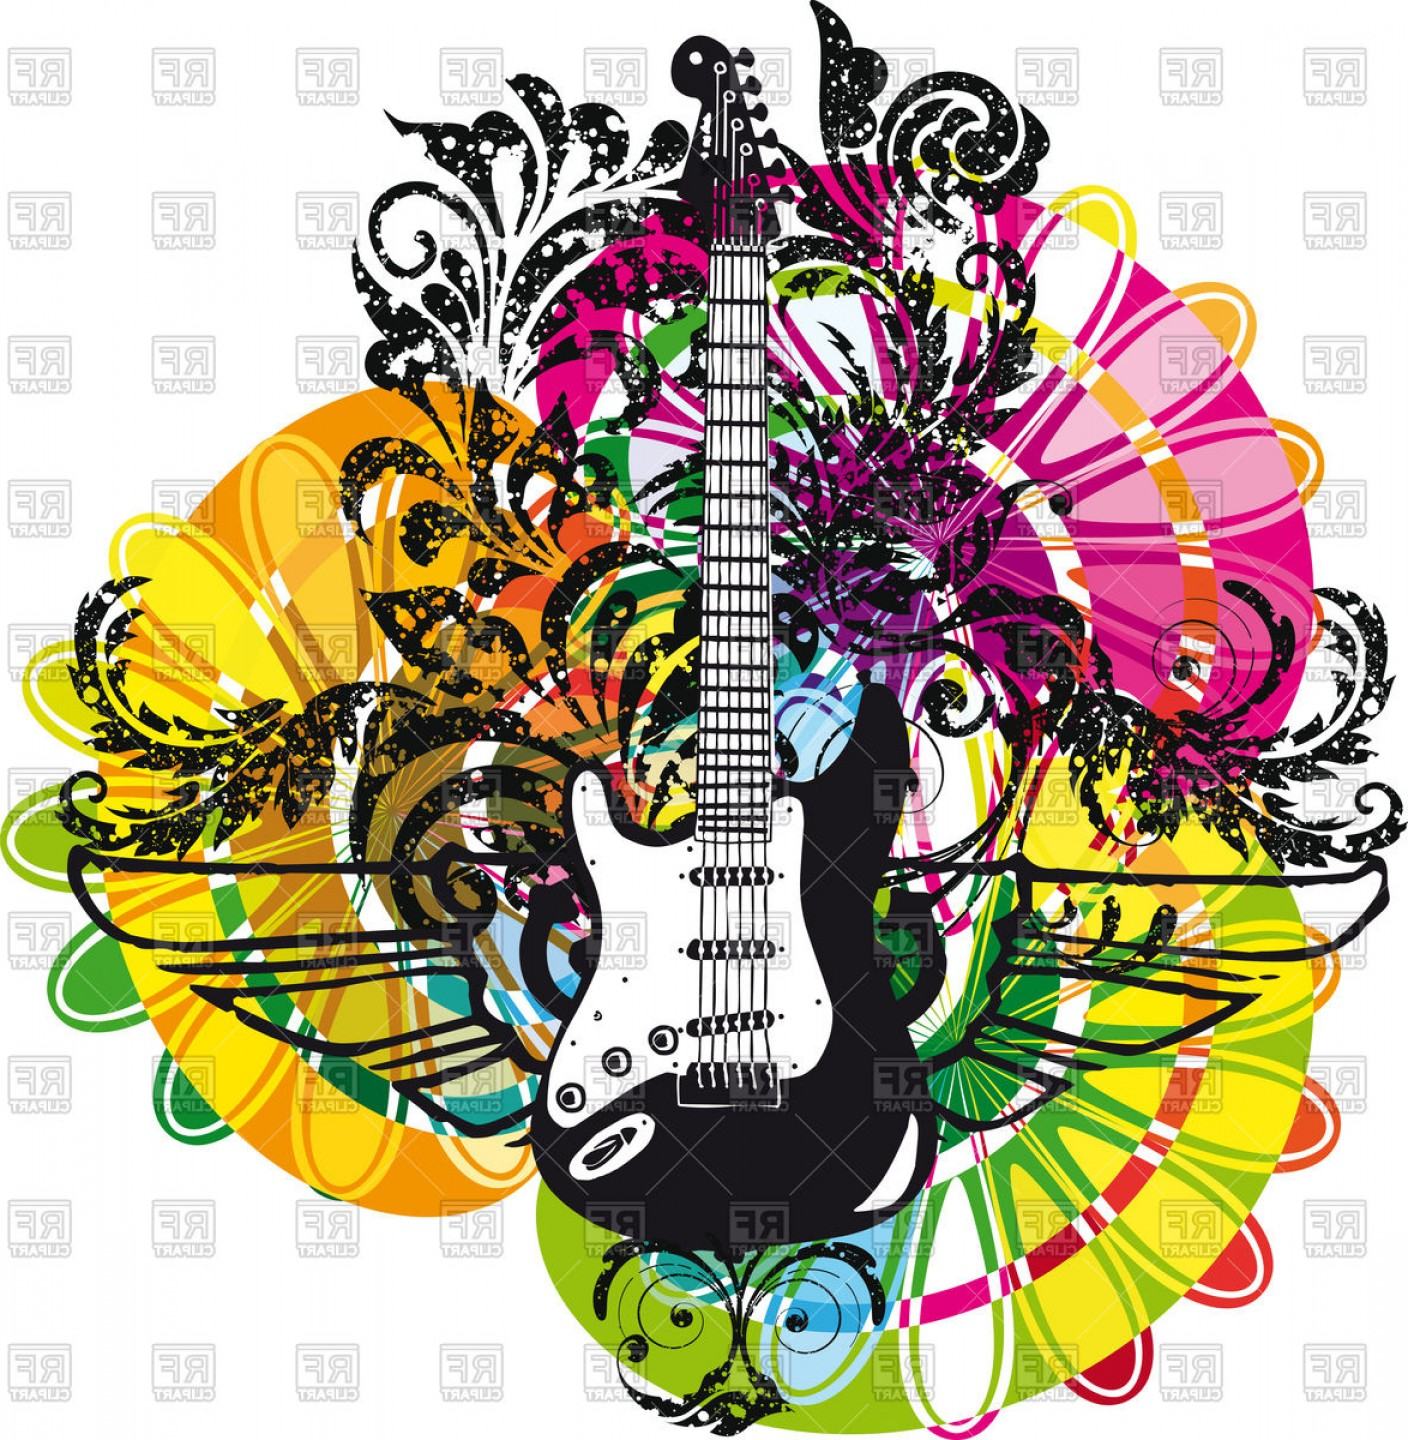 Abstract musical instrument clipart ideas clipart freeuse stock Vectors Graphics Art Guitars   SOIDERGI clipart freeuse stock